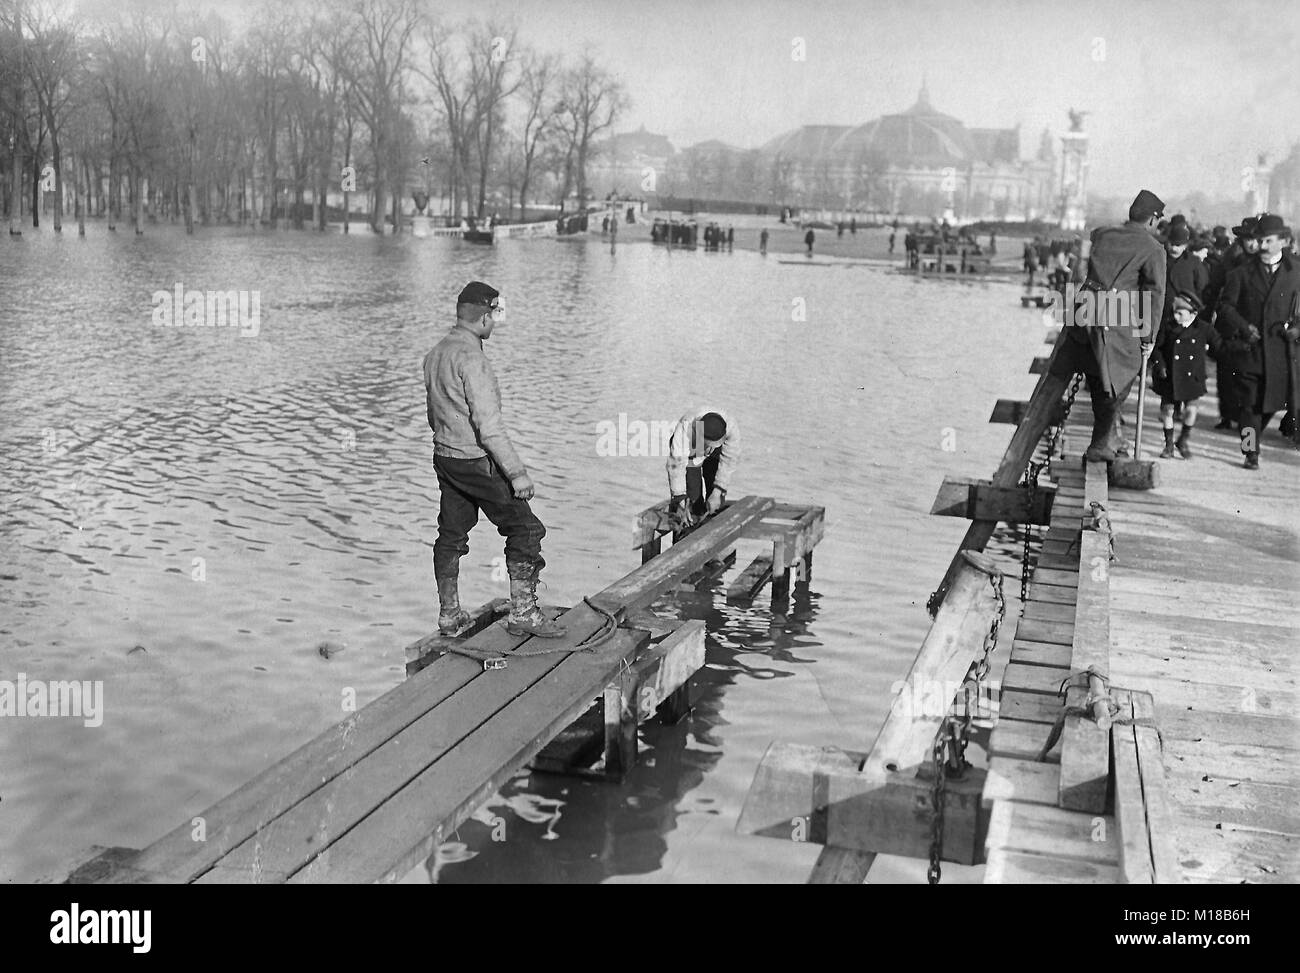 The historic flooding of Paris in the year 1910, the flooded Esplanade des Invalides - Stock Image